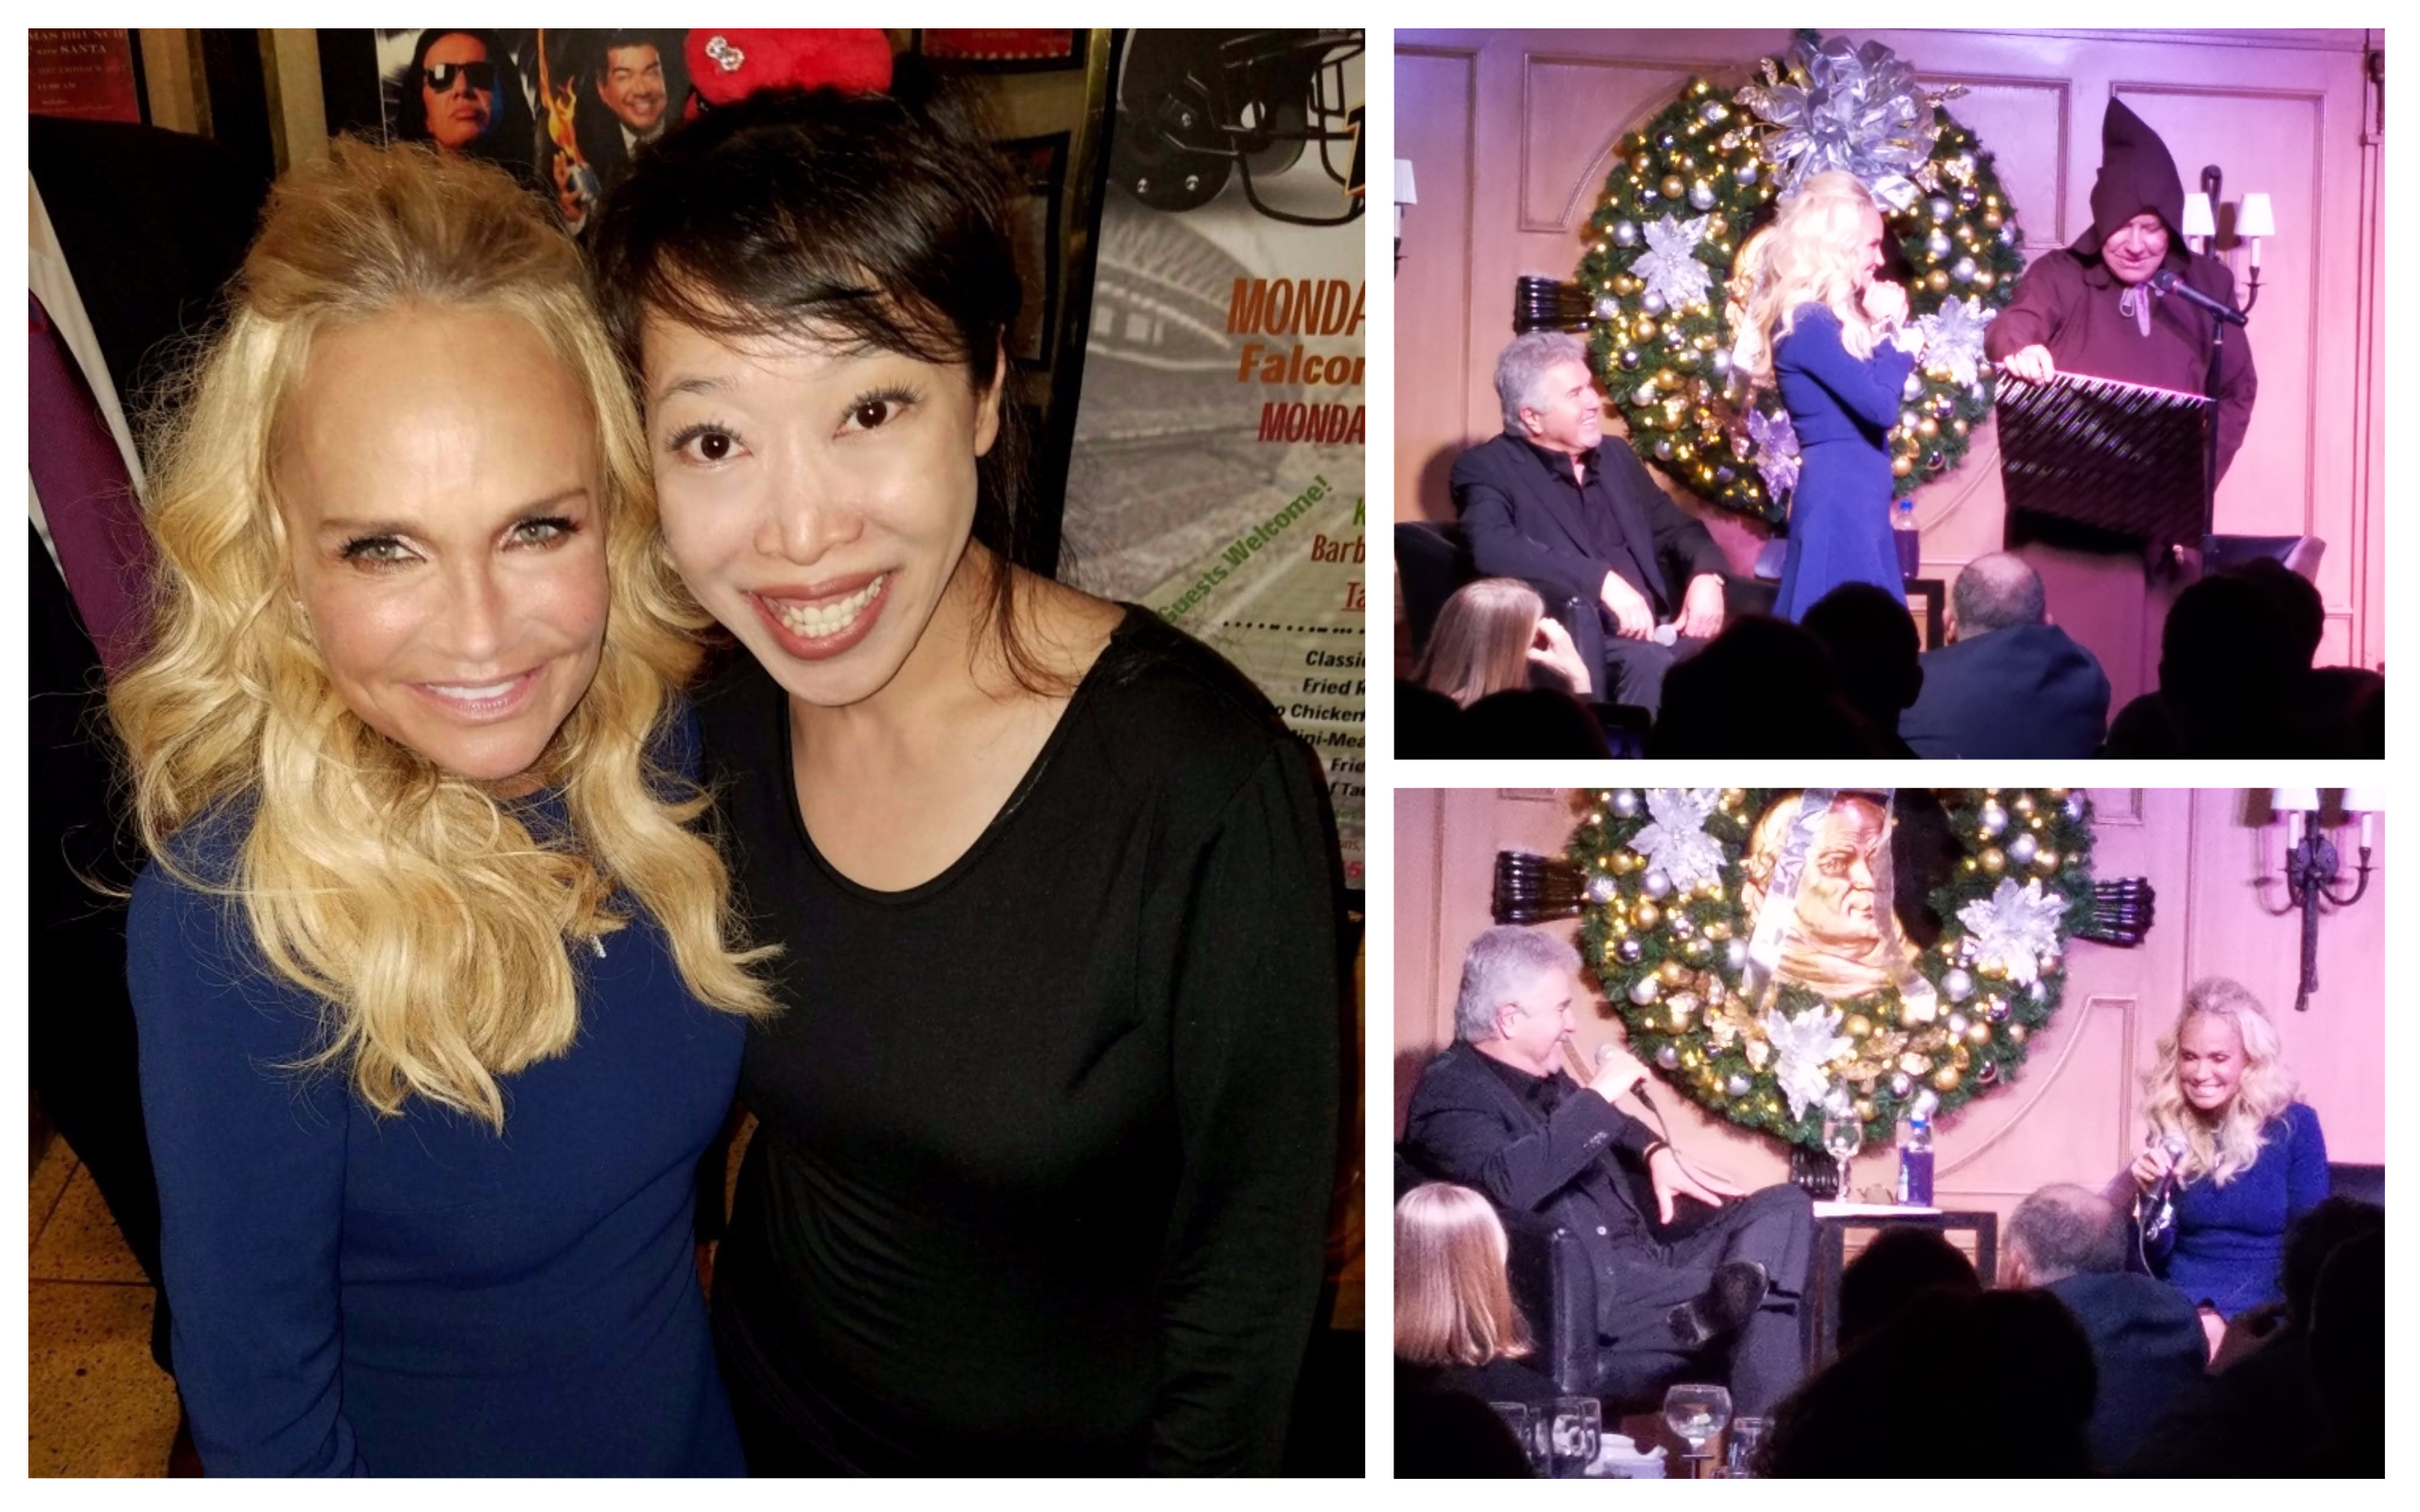 Honored to meet & video Steve Tyrell's interview of Grammy/Emmy award winning star,  Kristin Chenoweth, her induction into the Friar's Club and her subsequent FABULOUS performance!  What A TREAT!